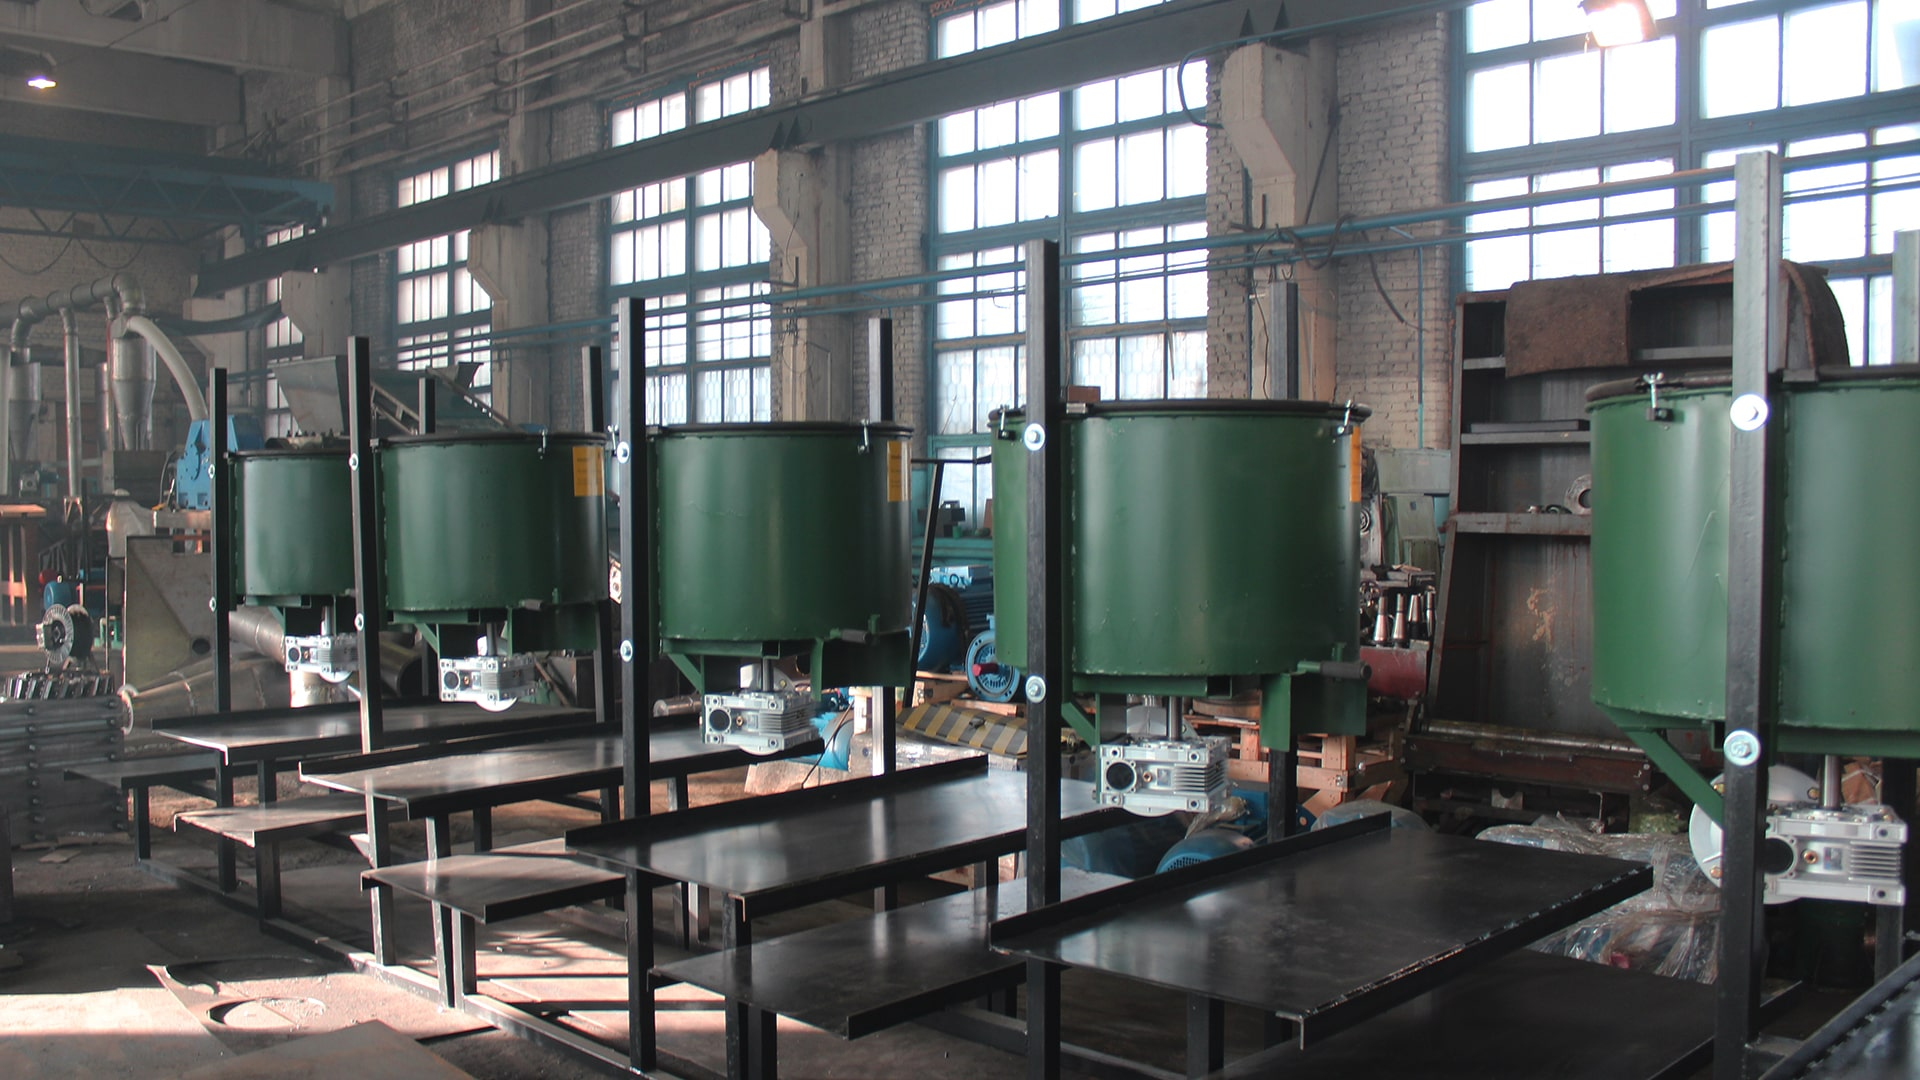 Equipment for the production of tiles